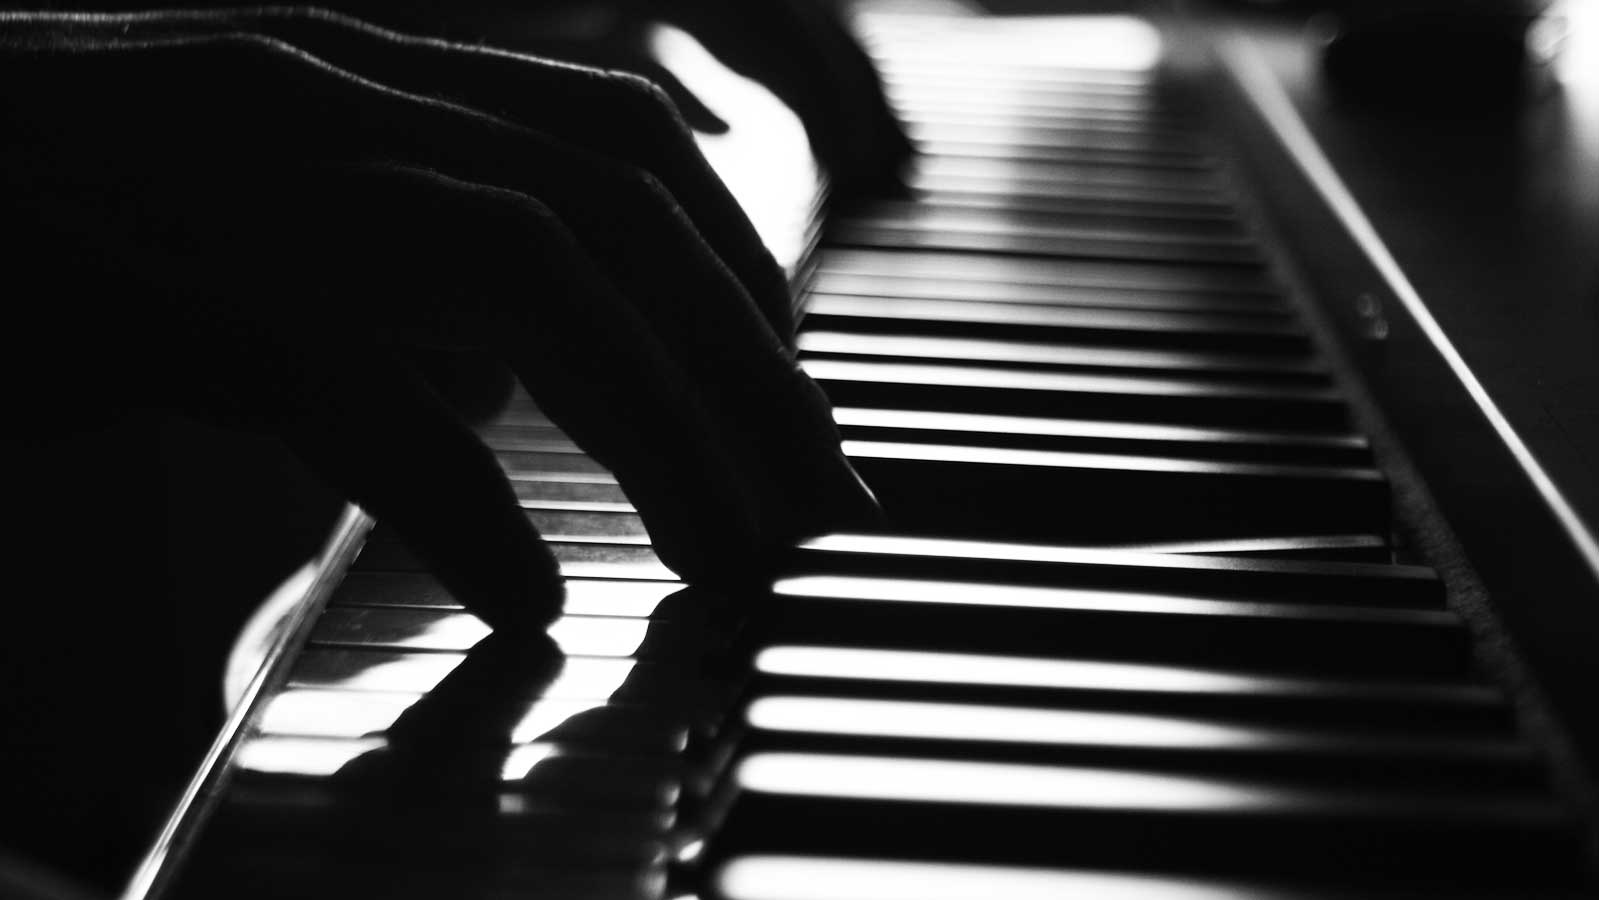 cours de piano paris